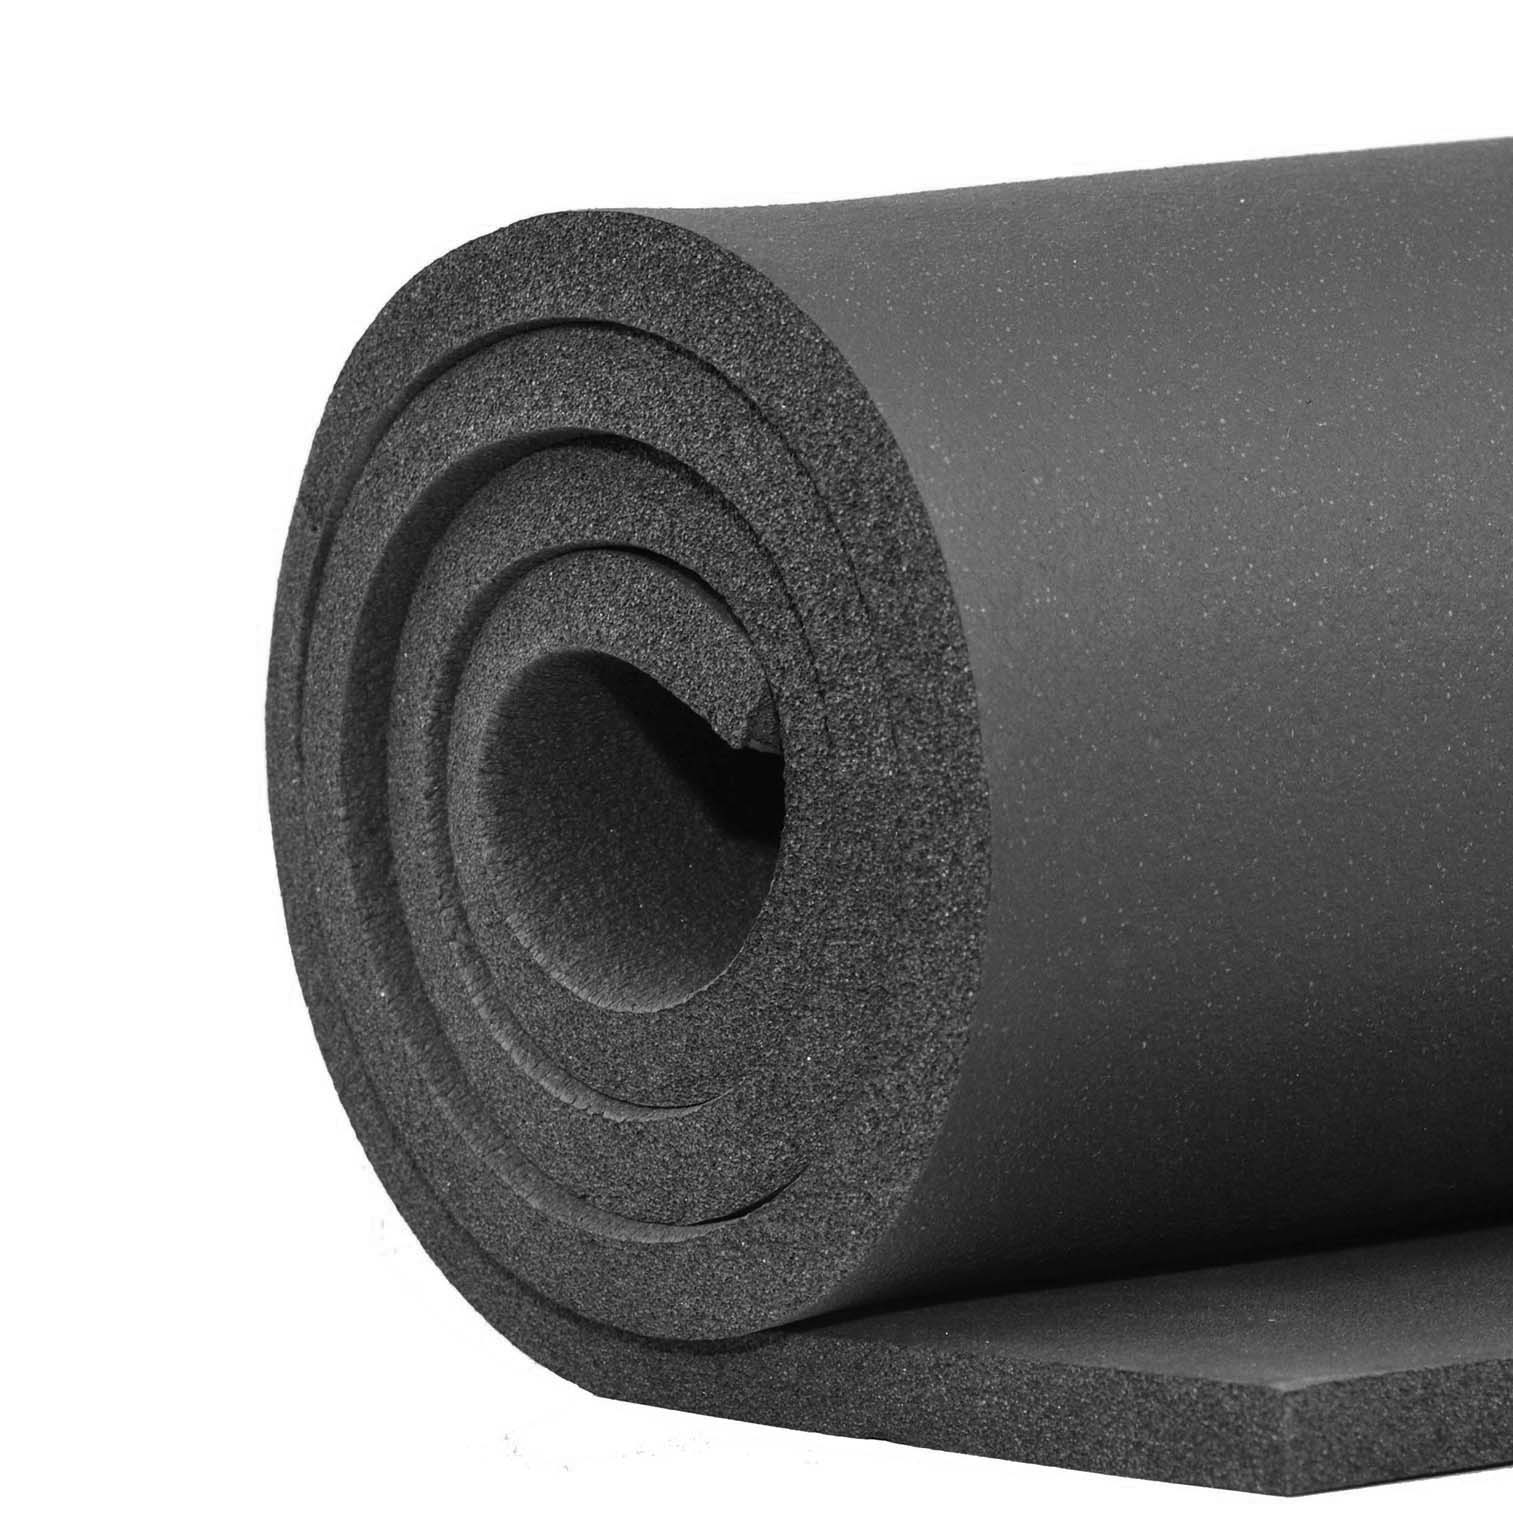 Closed Cell Foam Mat Armaflex Closed Cell Foam Pipe Insulation 3 X 4 Sheets